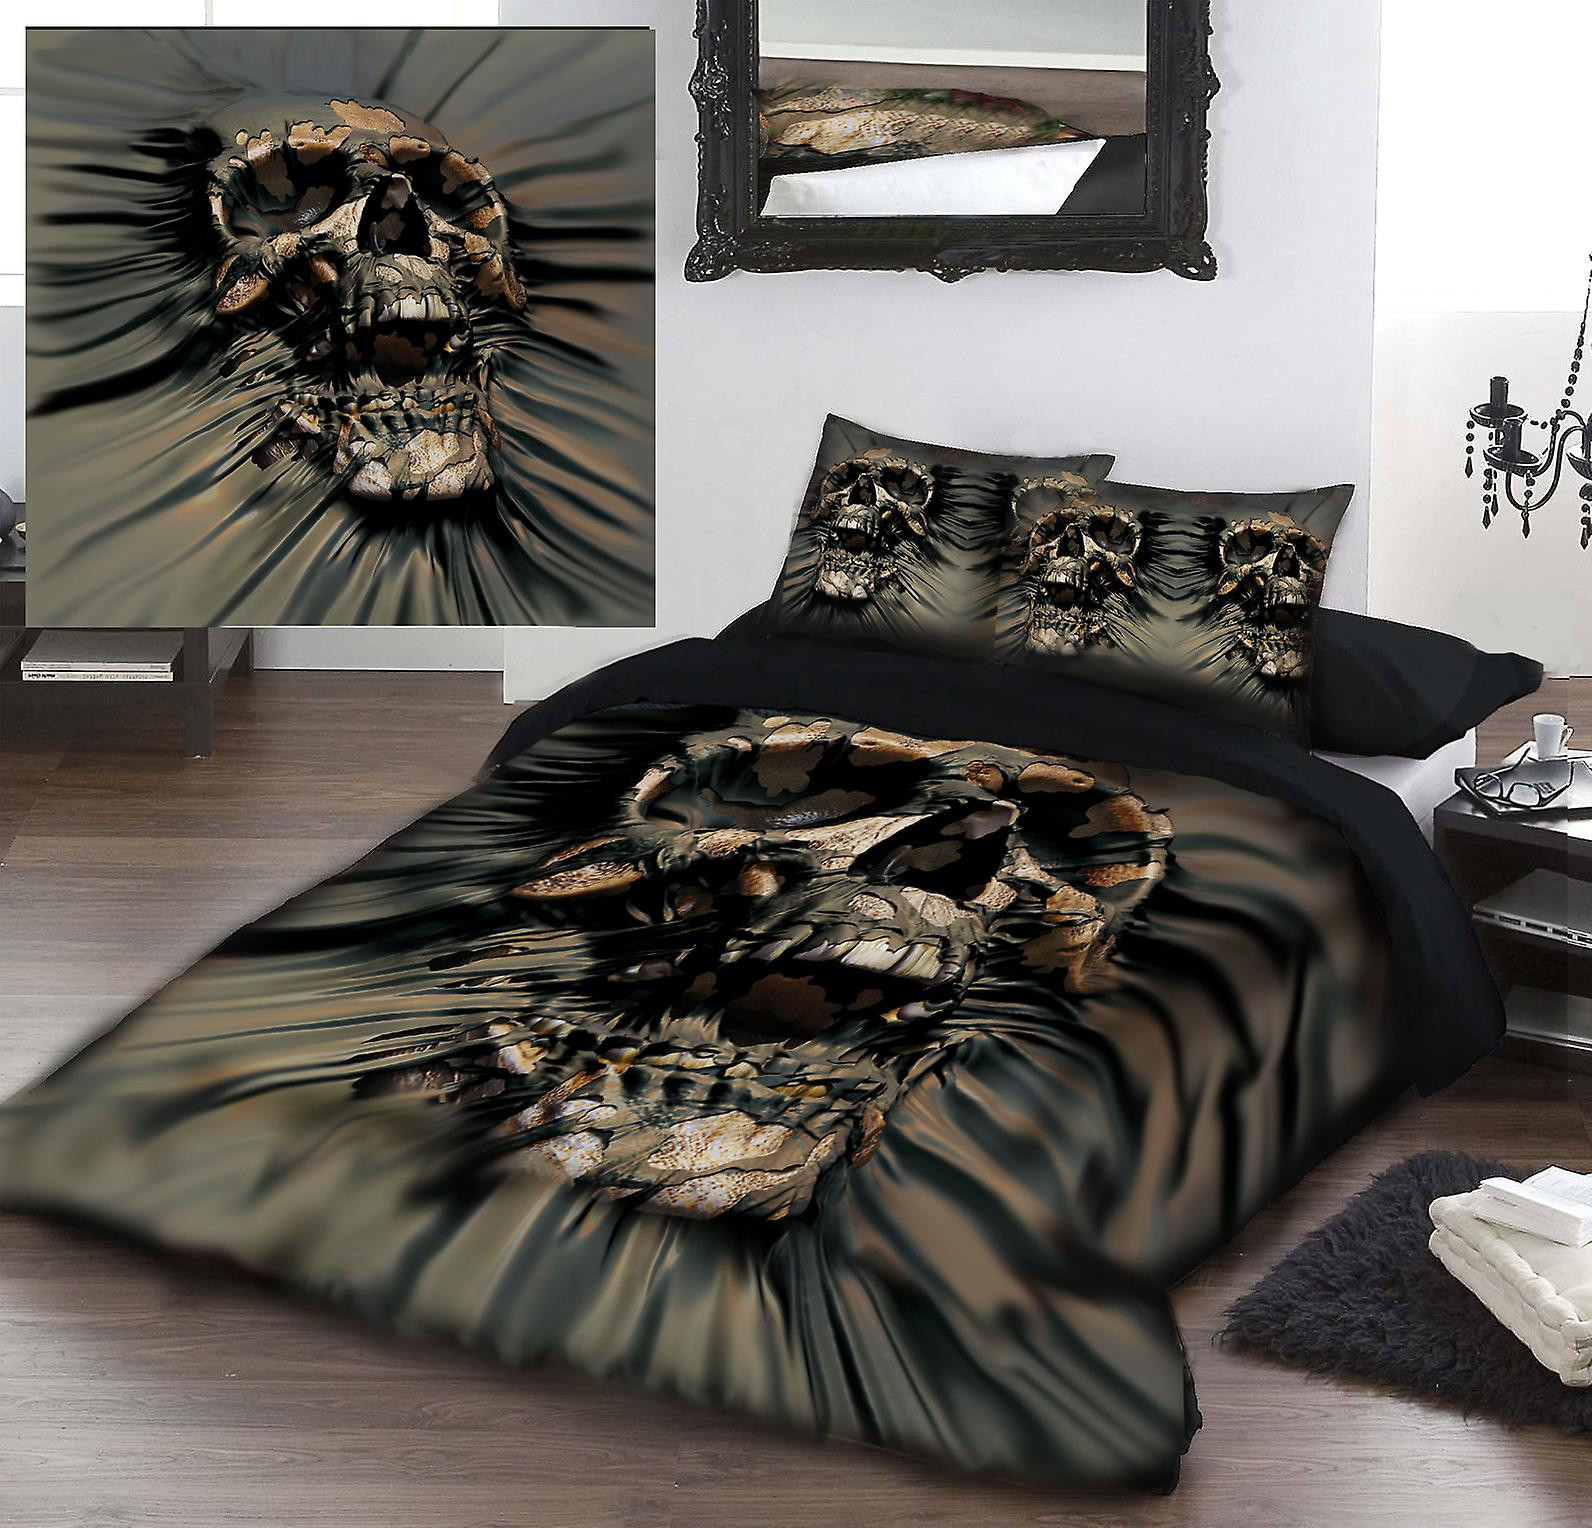 Skull rip through - duvet & pilFaible covers case set superkingTaille bed  art by david penfound